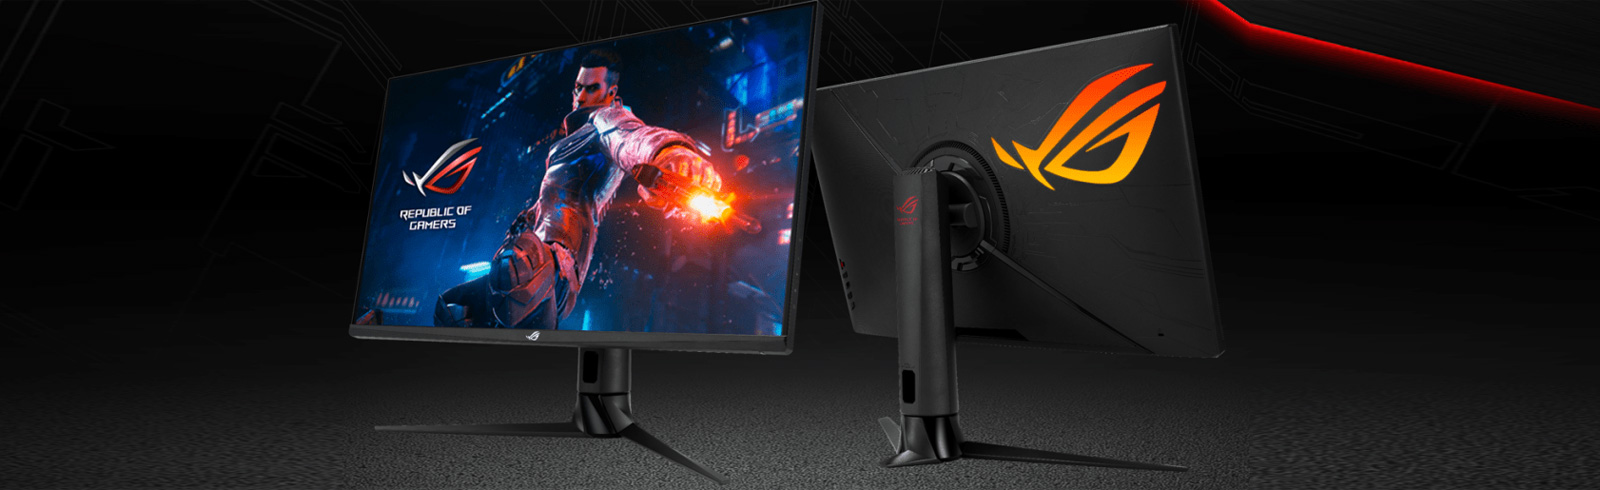 The Asus PG329Q from the ROG Swift series offers up to 175Hz refresh rate